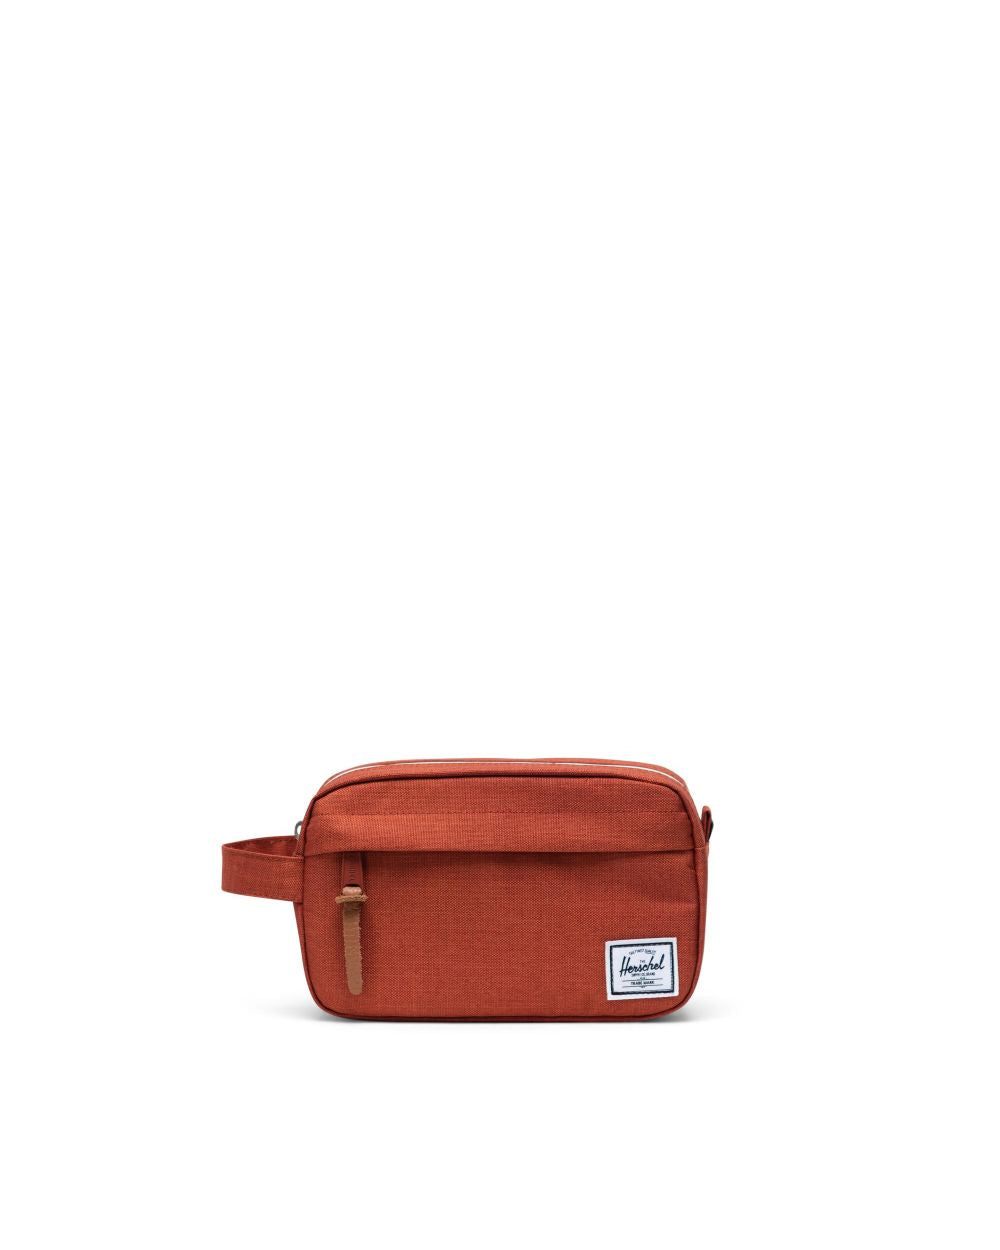 Herschel Chapter Toiletry Bag Carry-On